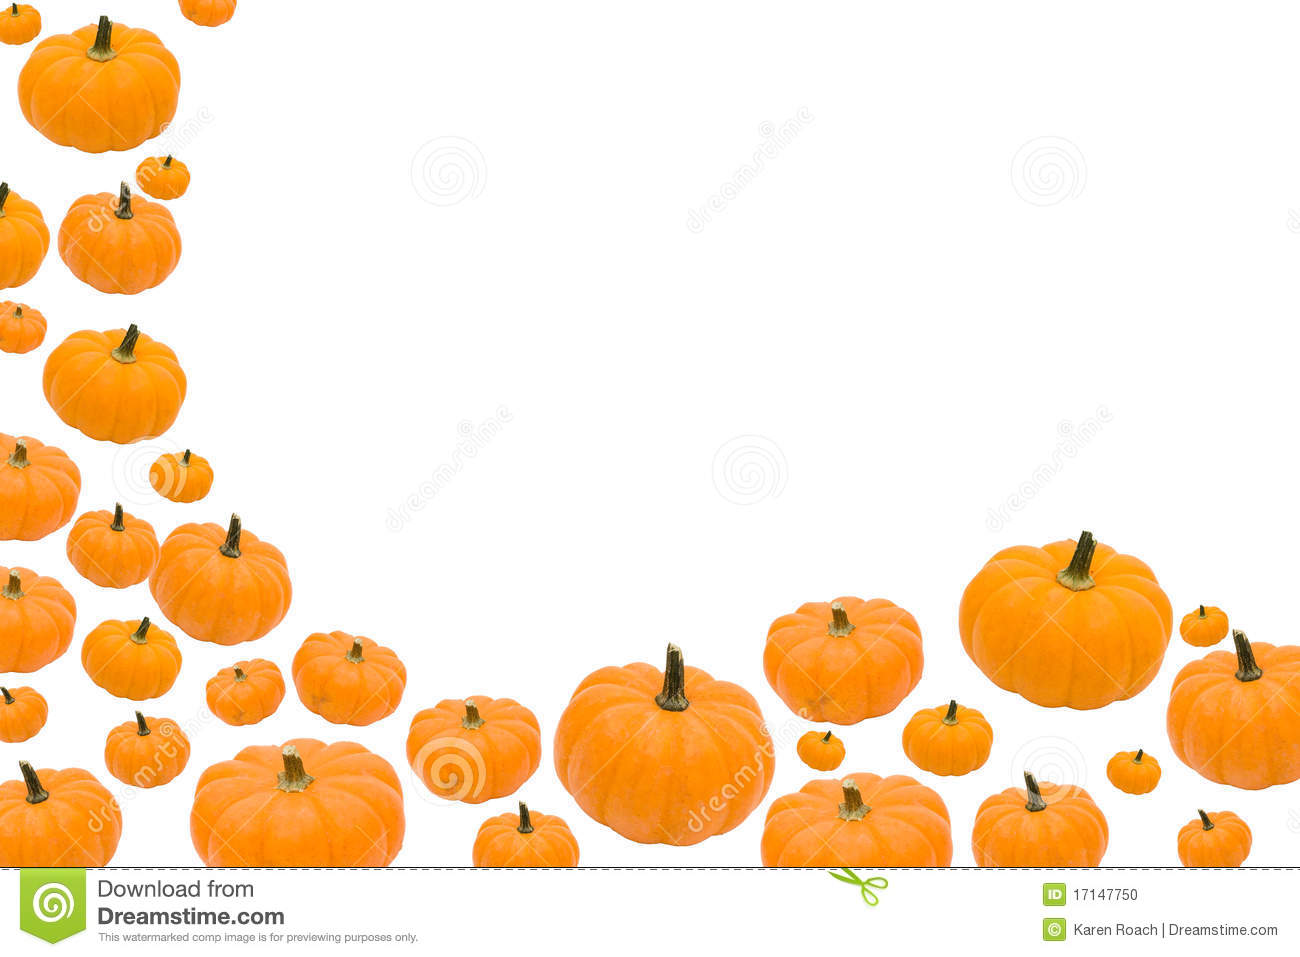 Pumpkin Border Vector Art ... 104.3Kb 13-Pumpkin Border vector art ... 104.3Kb 1300 x 957-16